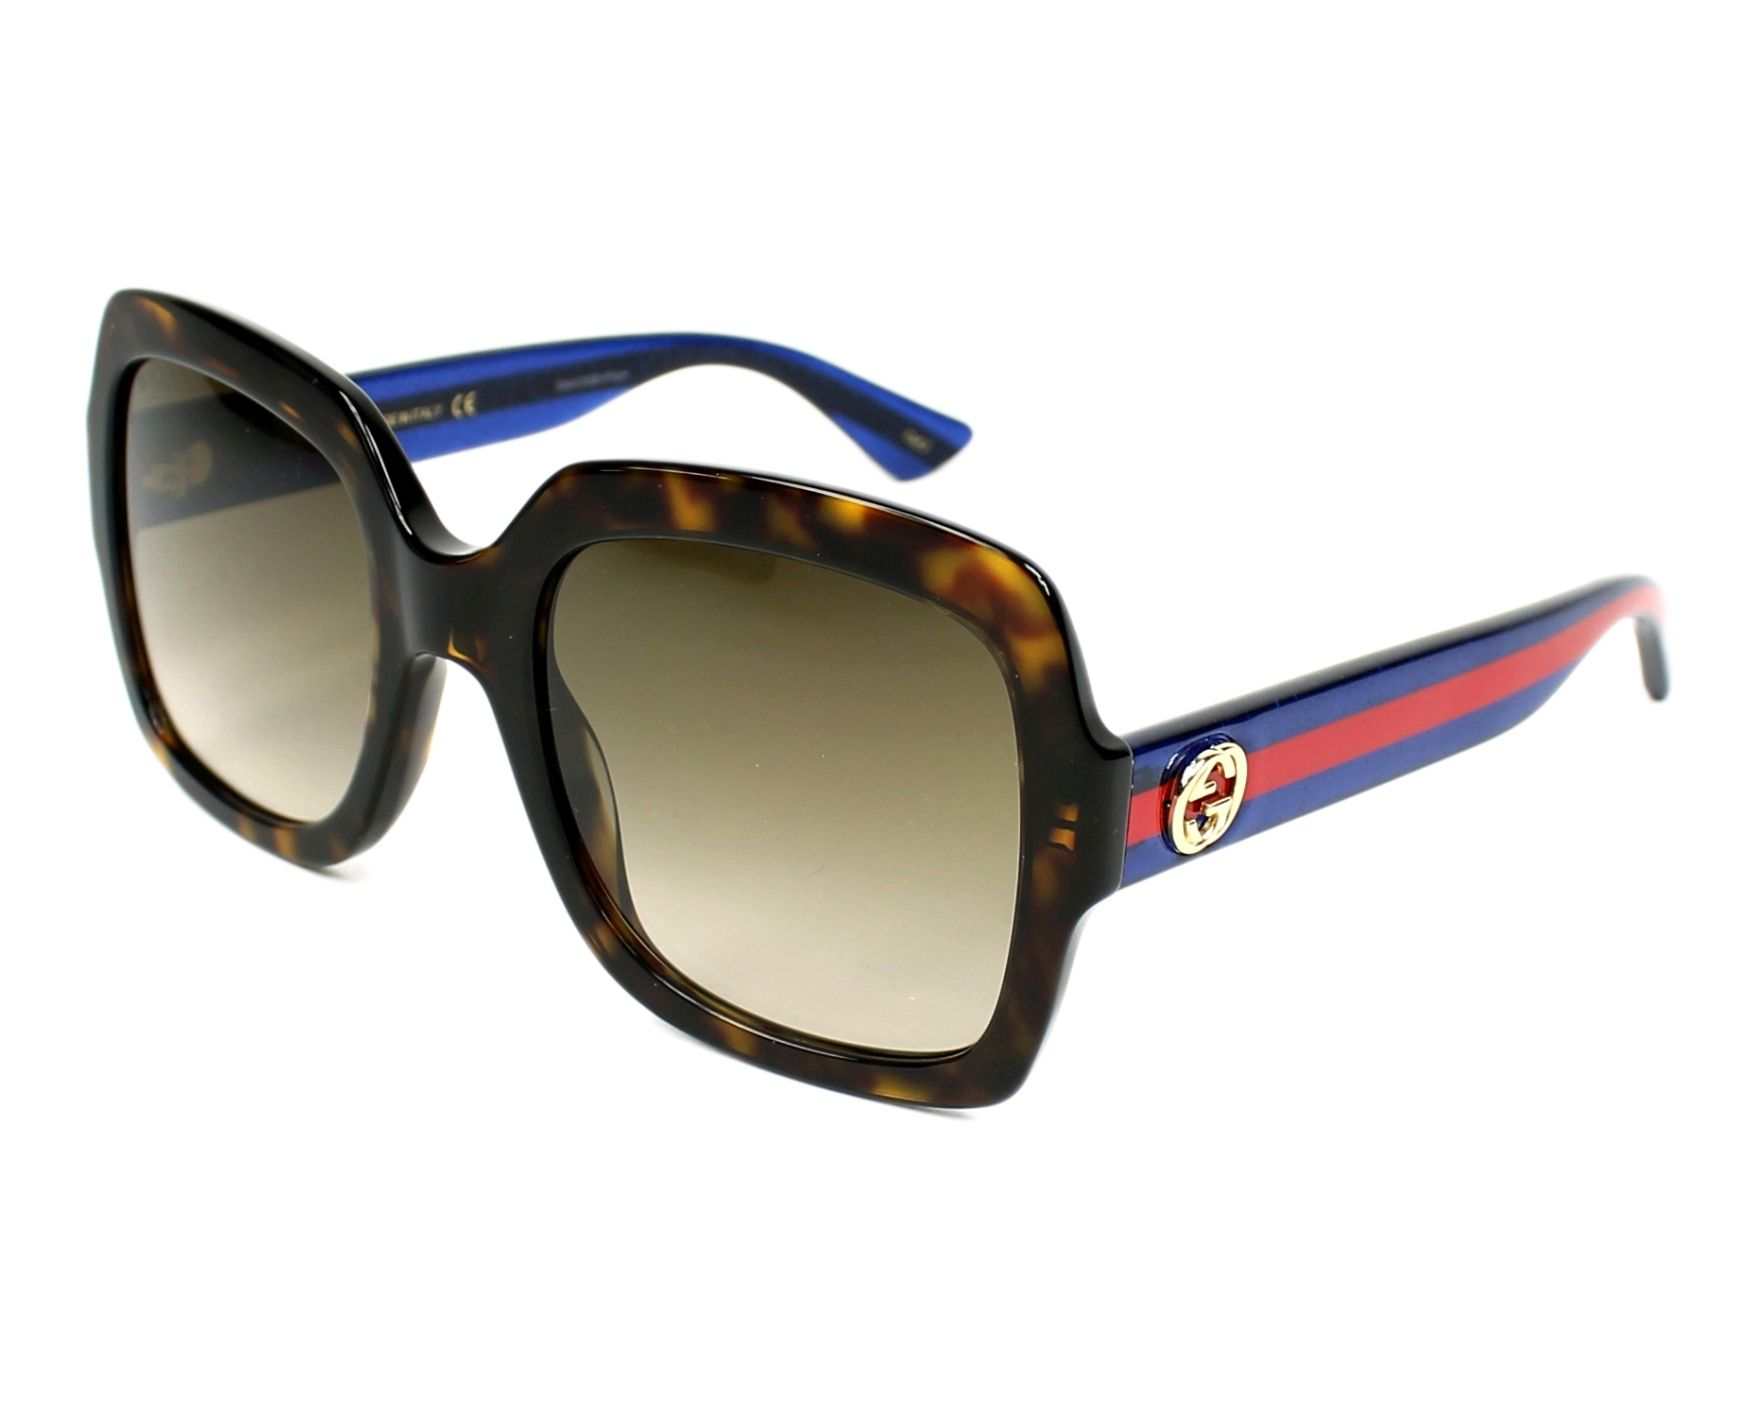 Gucci Sunglasses Havana With Brown Lenses Gg 0036 S 004 Visionet Us